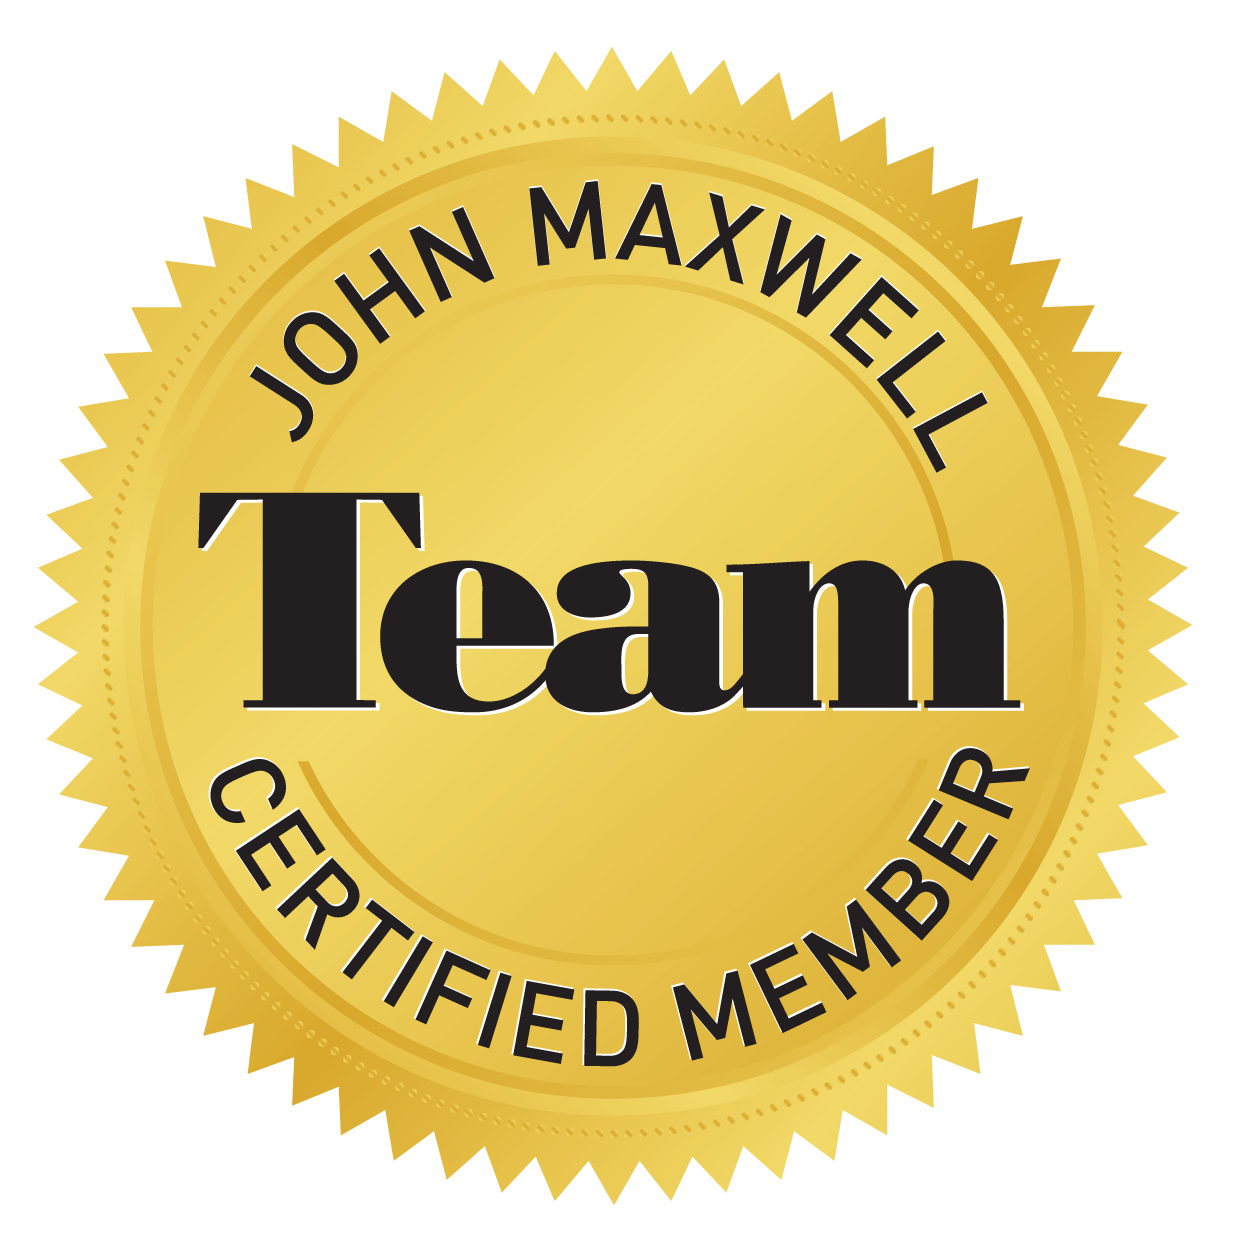 Cheryl Bonini Ellis is a John Maxwell Team Certified Speaker